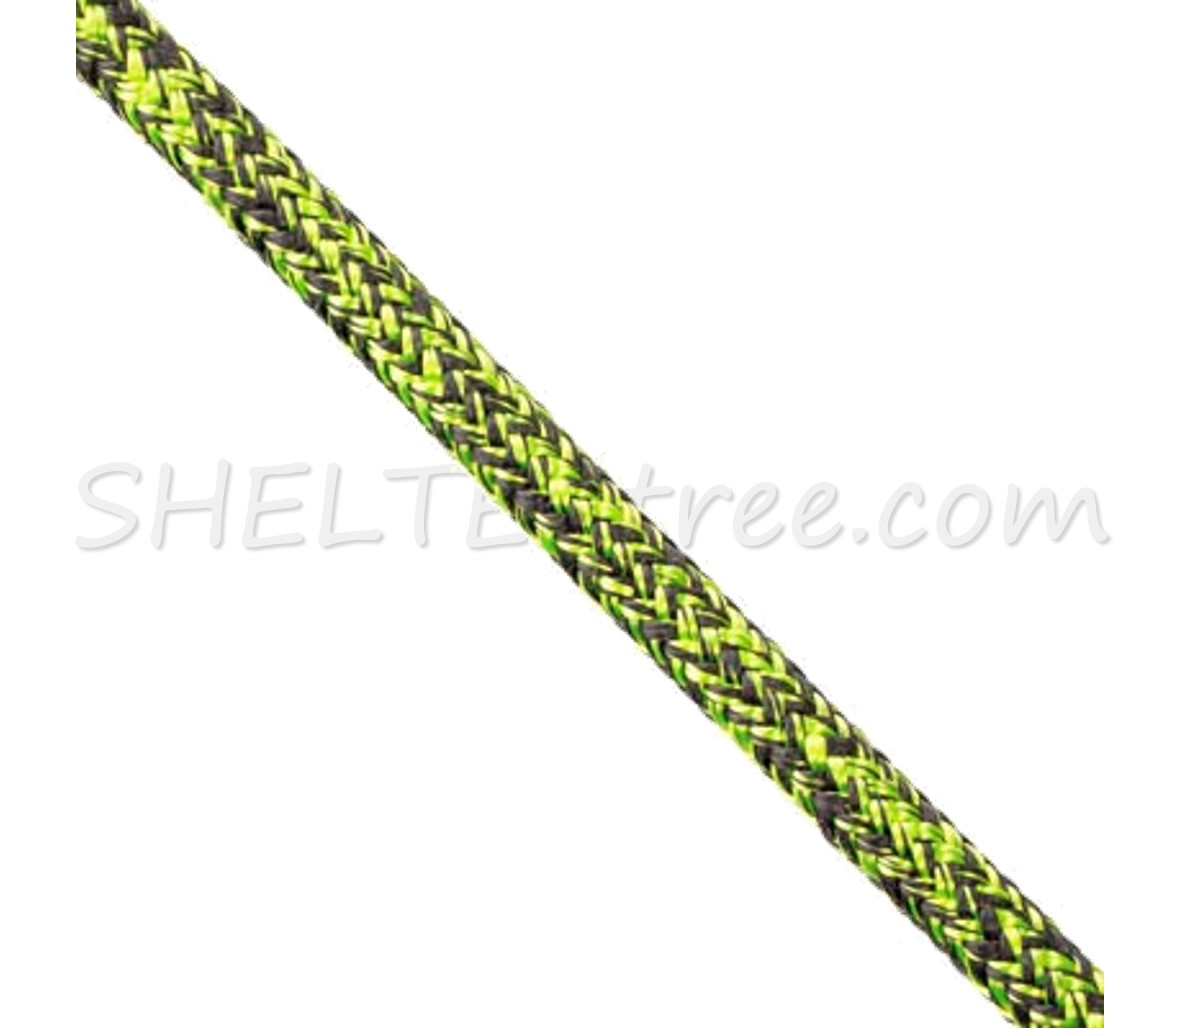 SHELTER - Donaghy's Armor-Prus Eye and Eye Hitch Cord Prusik - 8mm